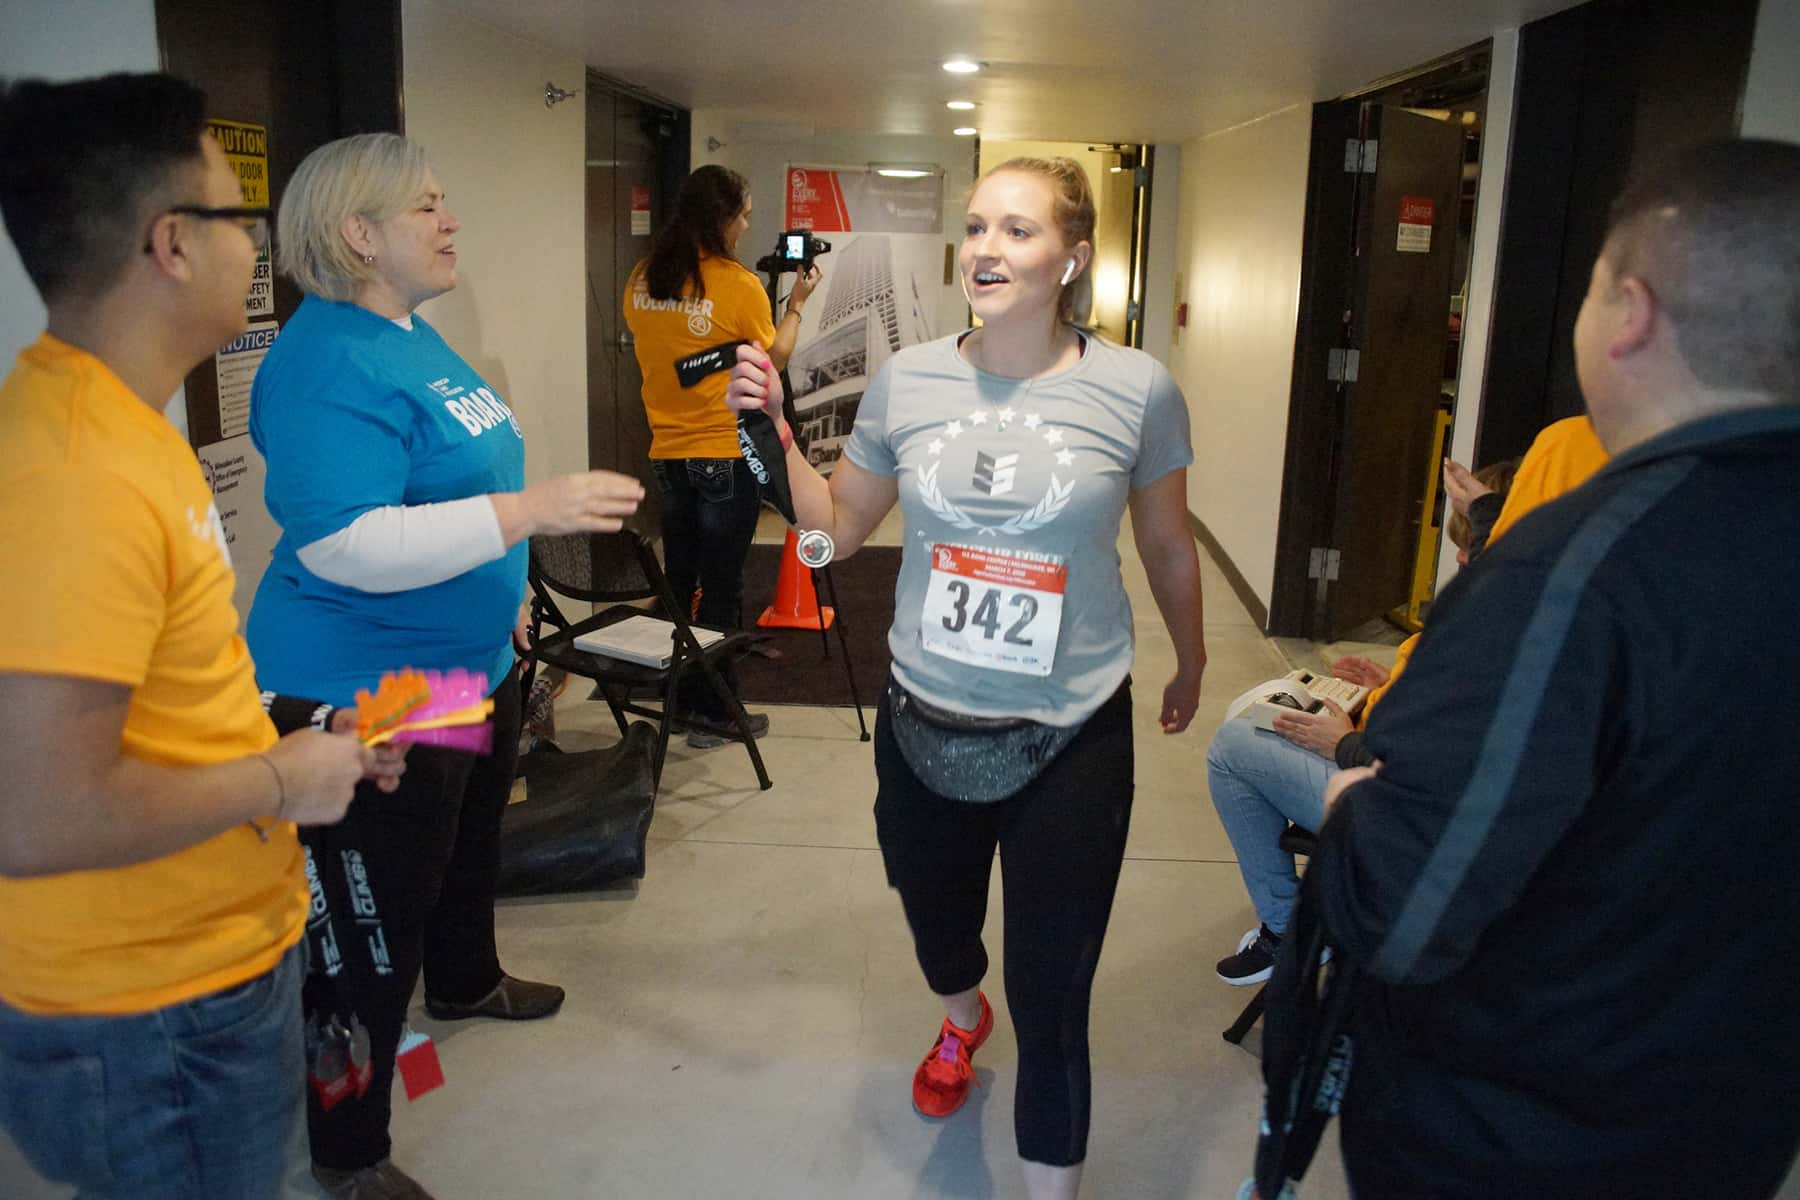 05_030720_fightforairclimb_0890